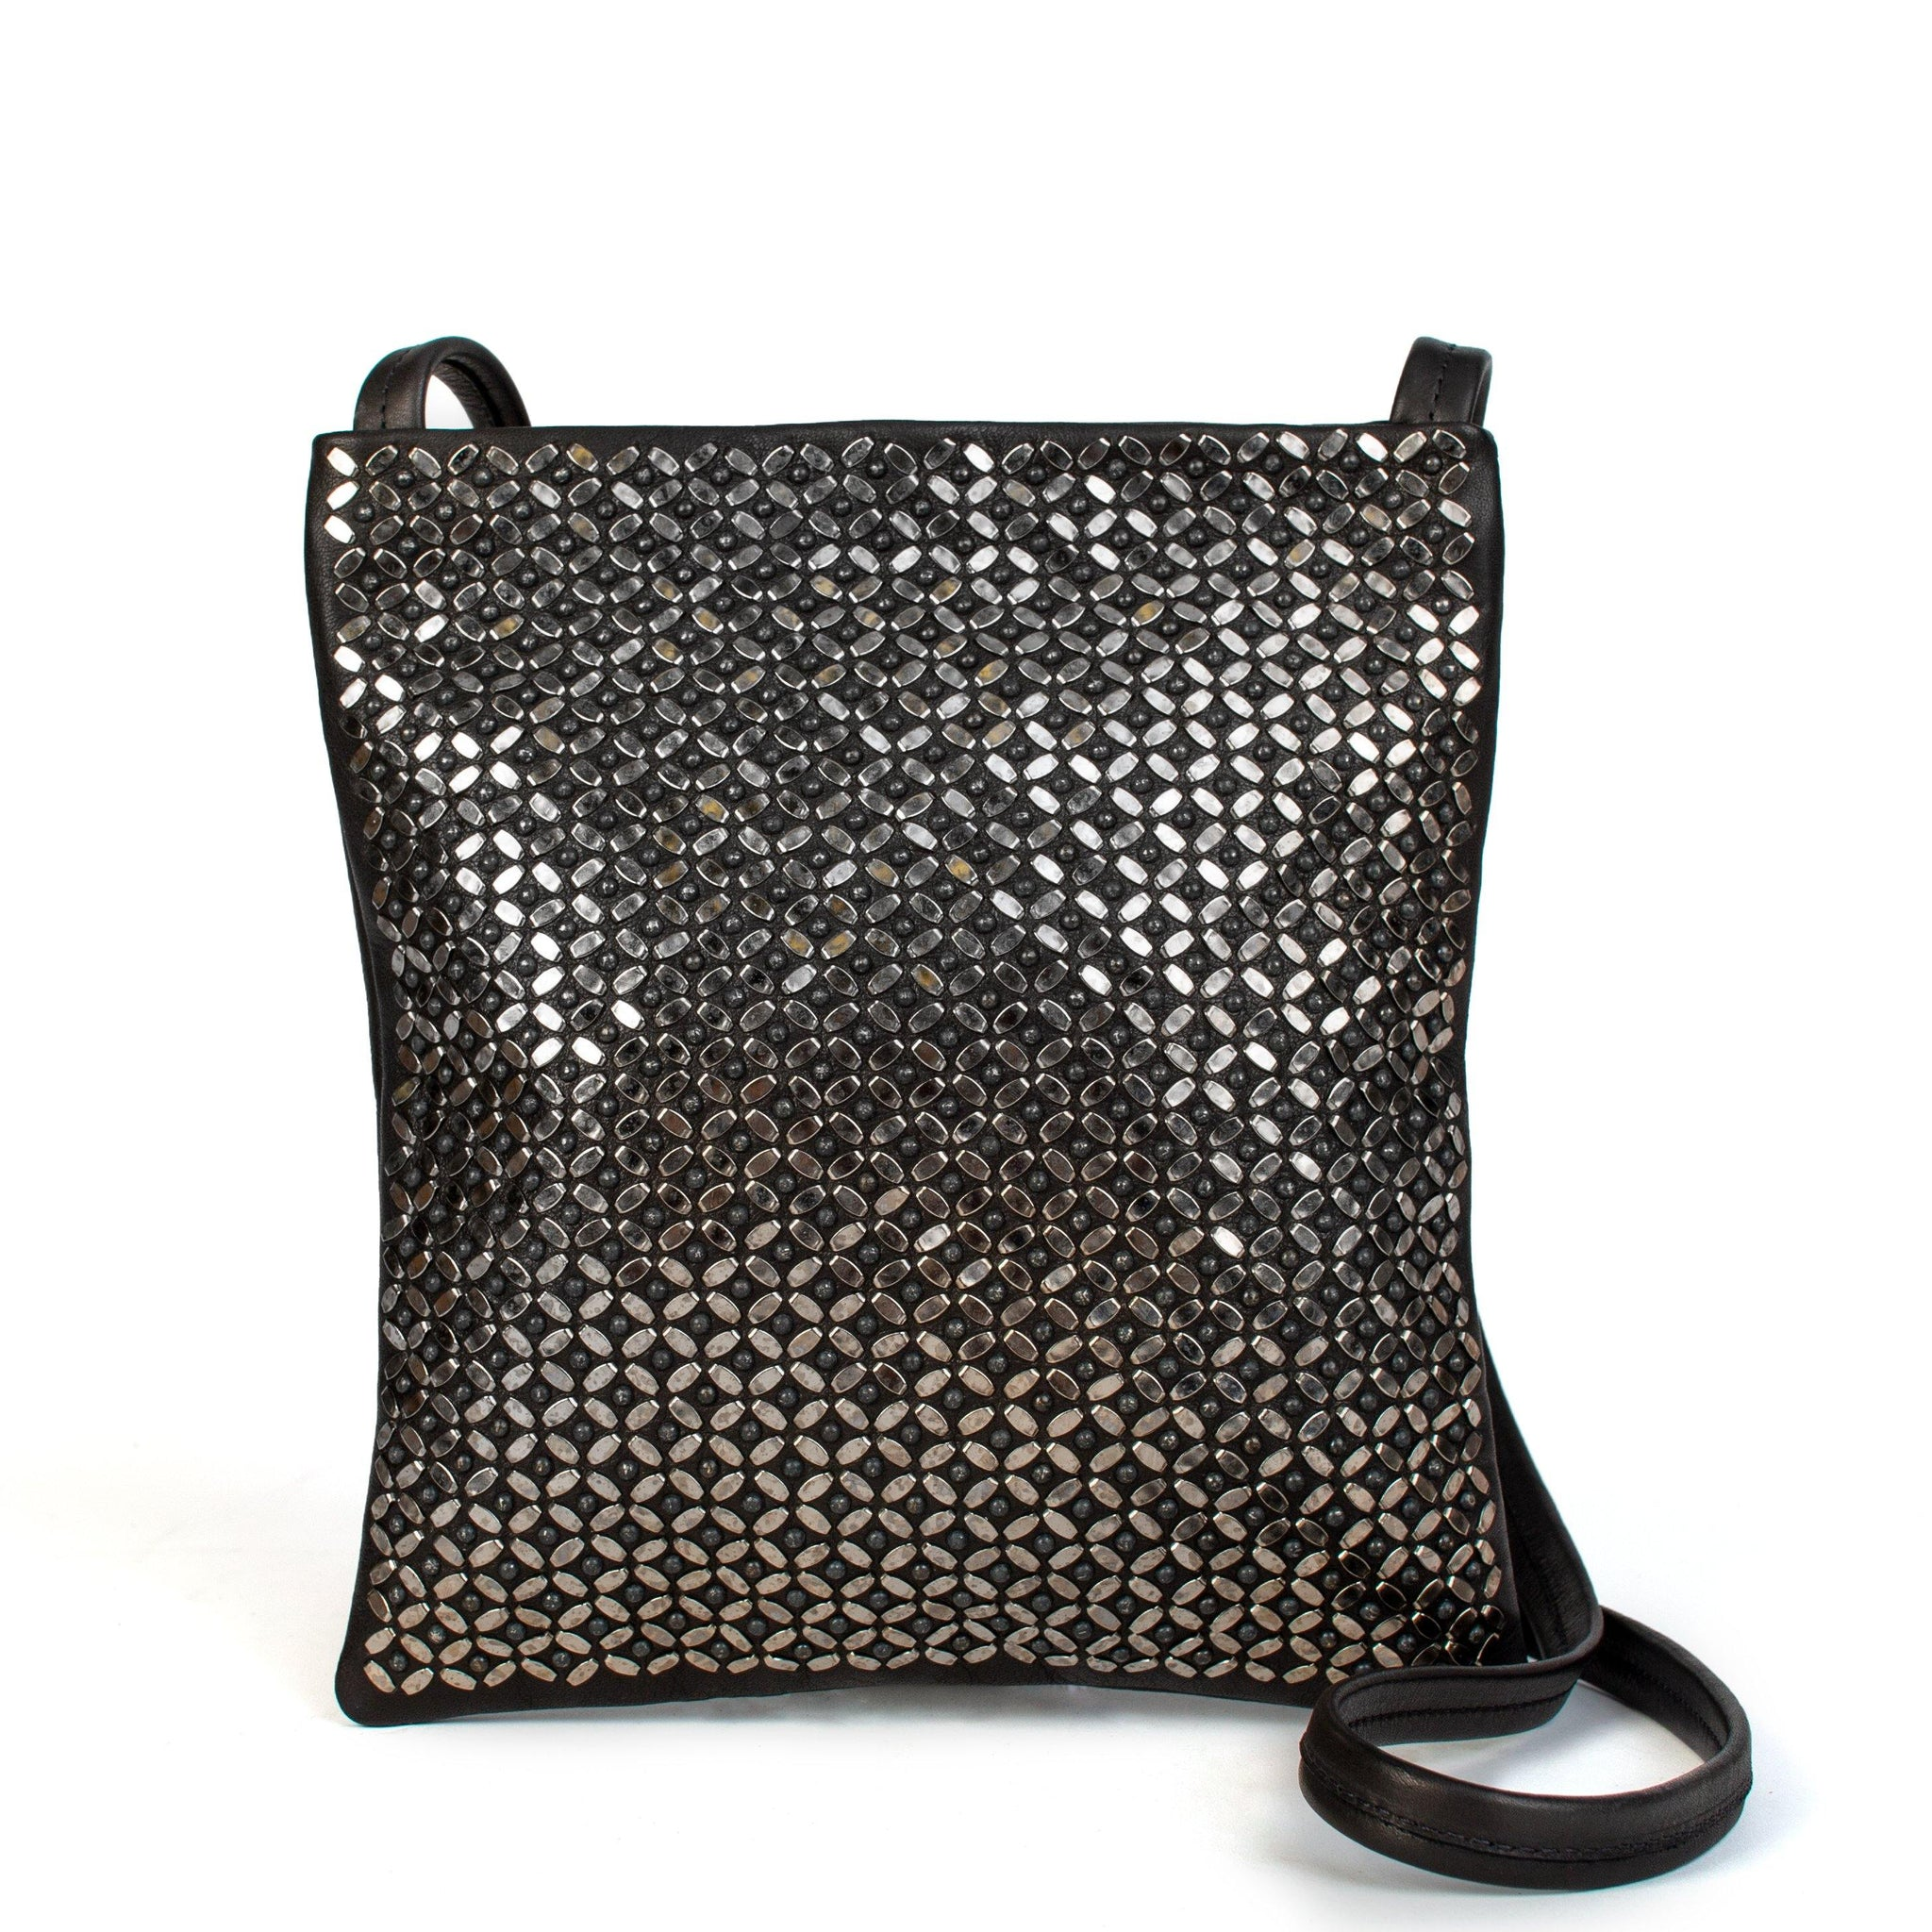 handmade black leather messenger handbag for women with nickel studs in whole front - Calleen Cordero Designs